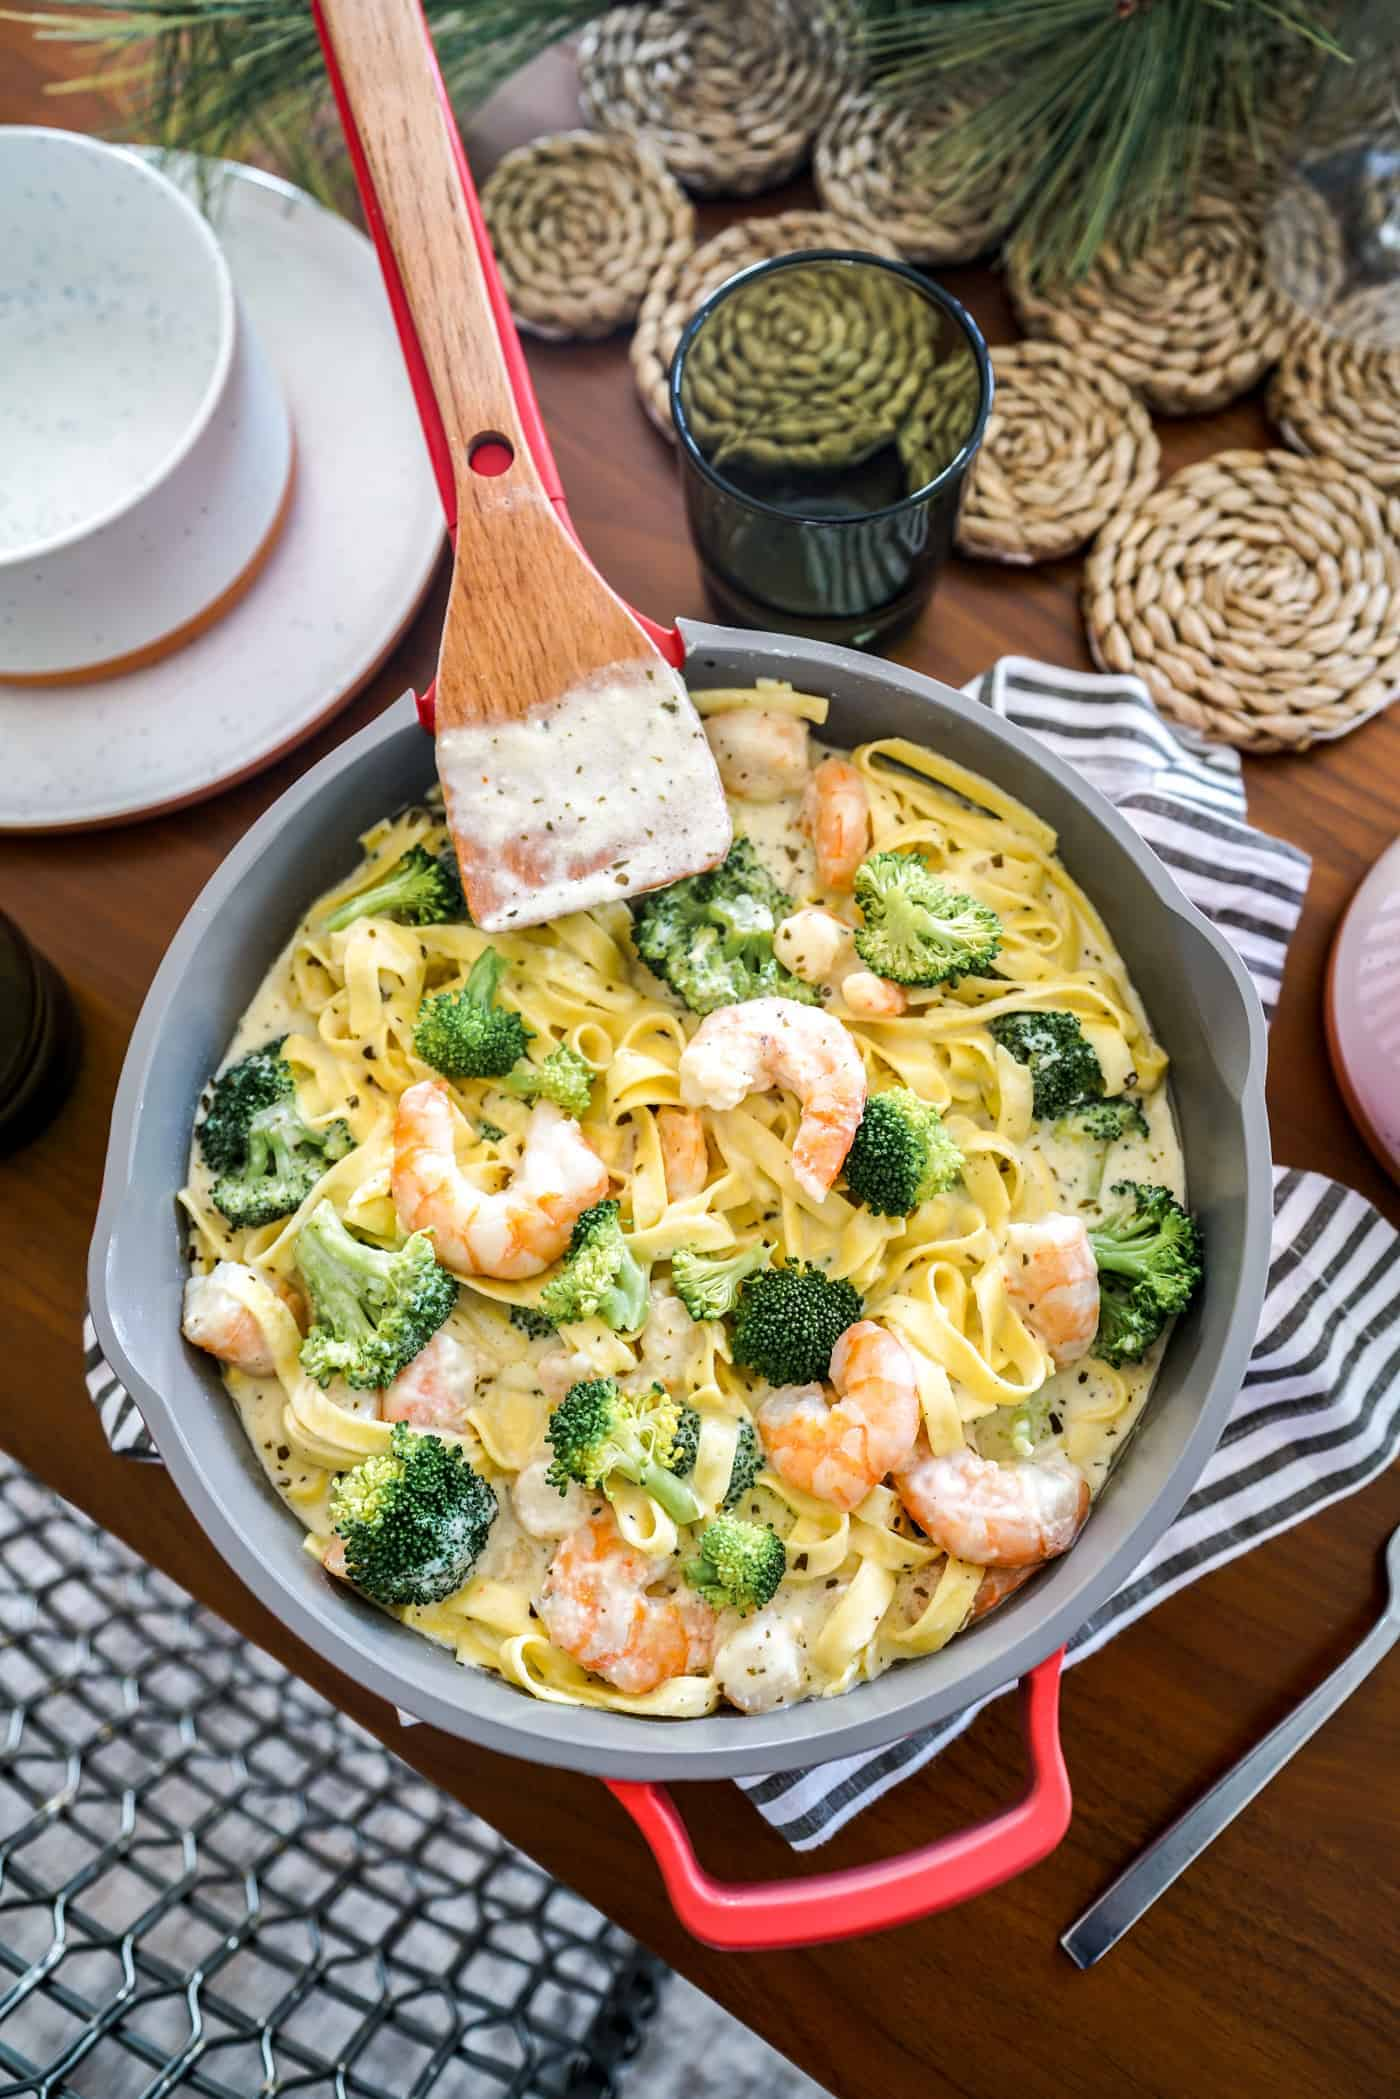 Basil Pesto Alfredo With Shrimp & Broccoli in an Our Place Always Pan